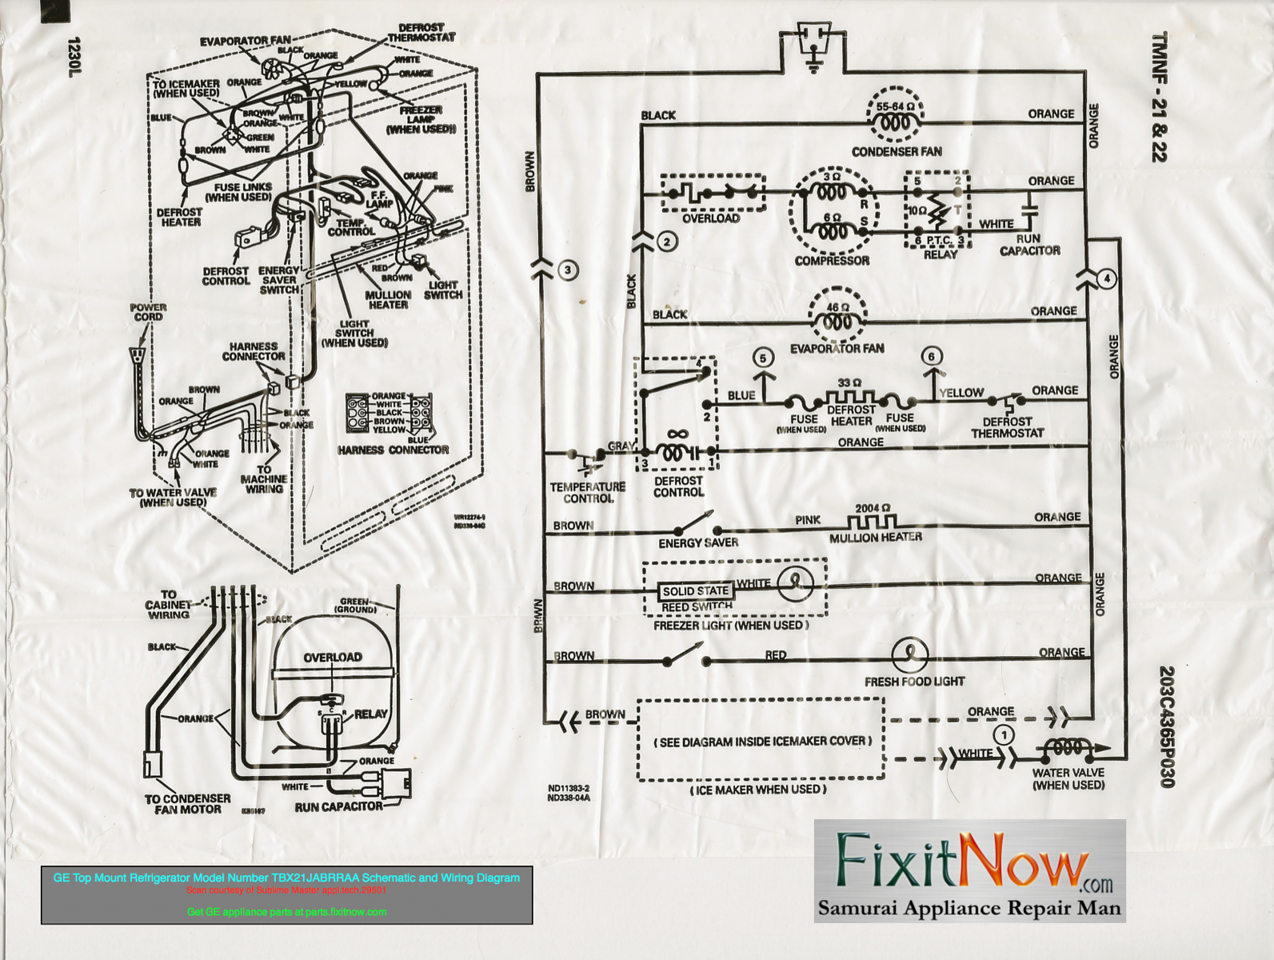 4904374061_e8eb3df6c6_o X2 wiring diagrams and schematics appliantology ge profile microwave wiring diagram at creativeand.co